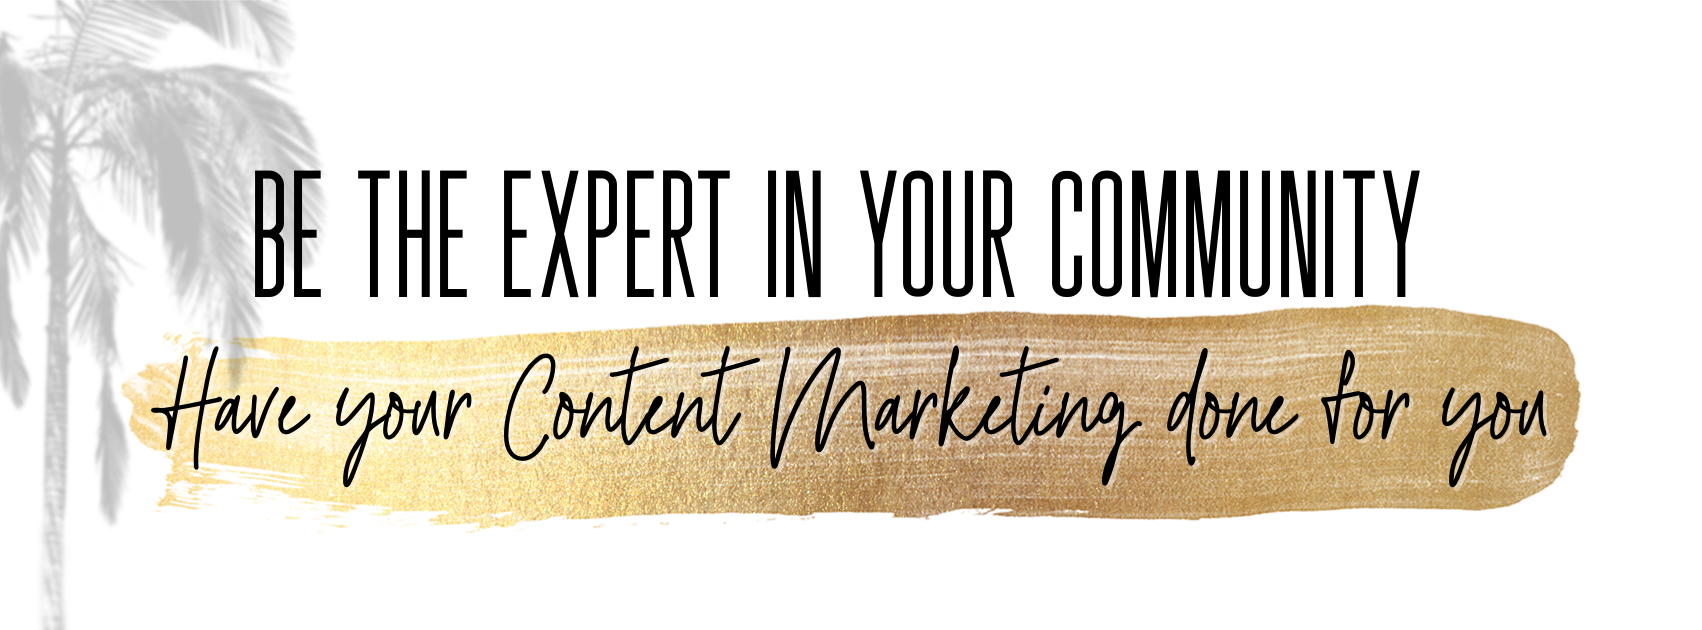 content marketing done for you katie burke.png